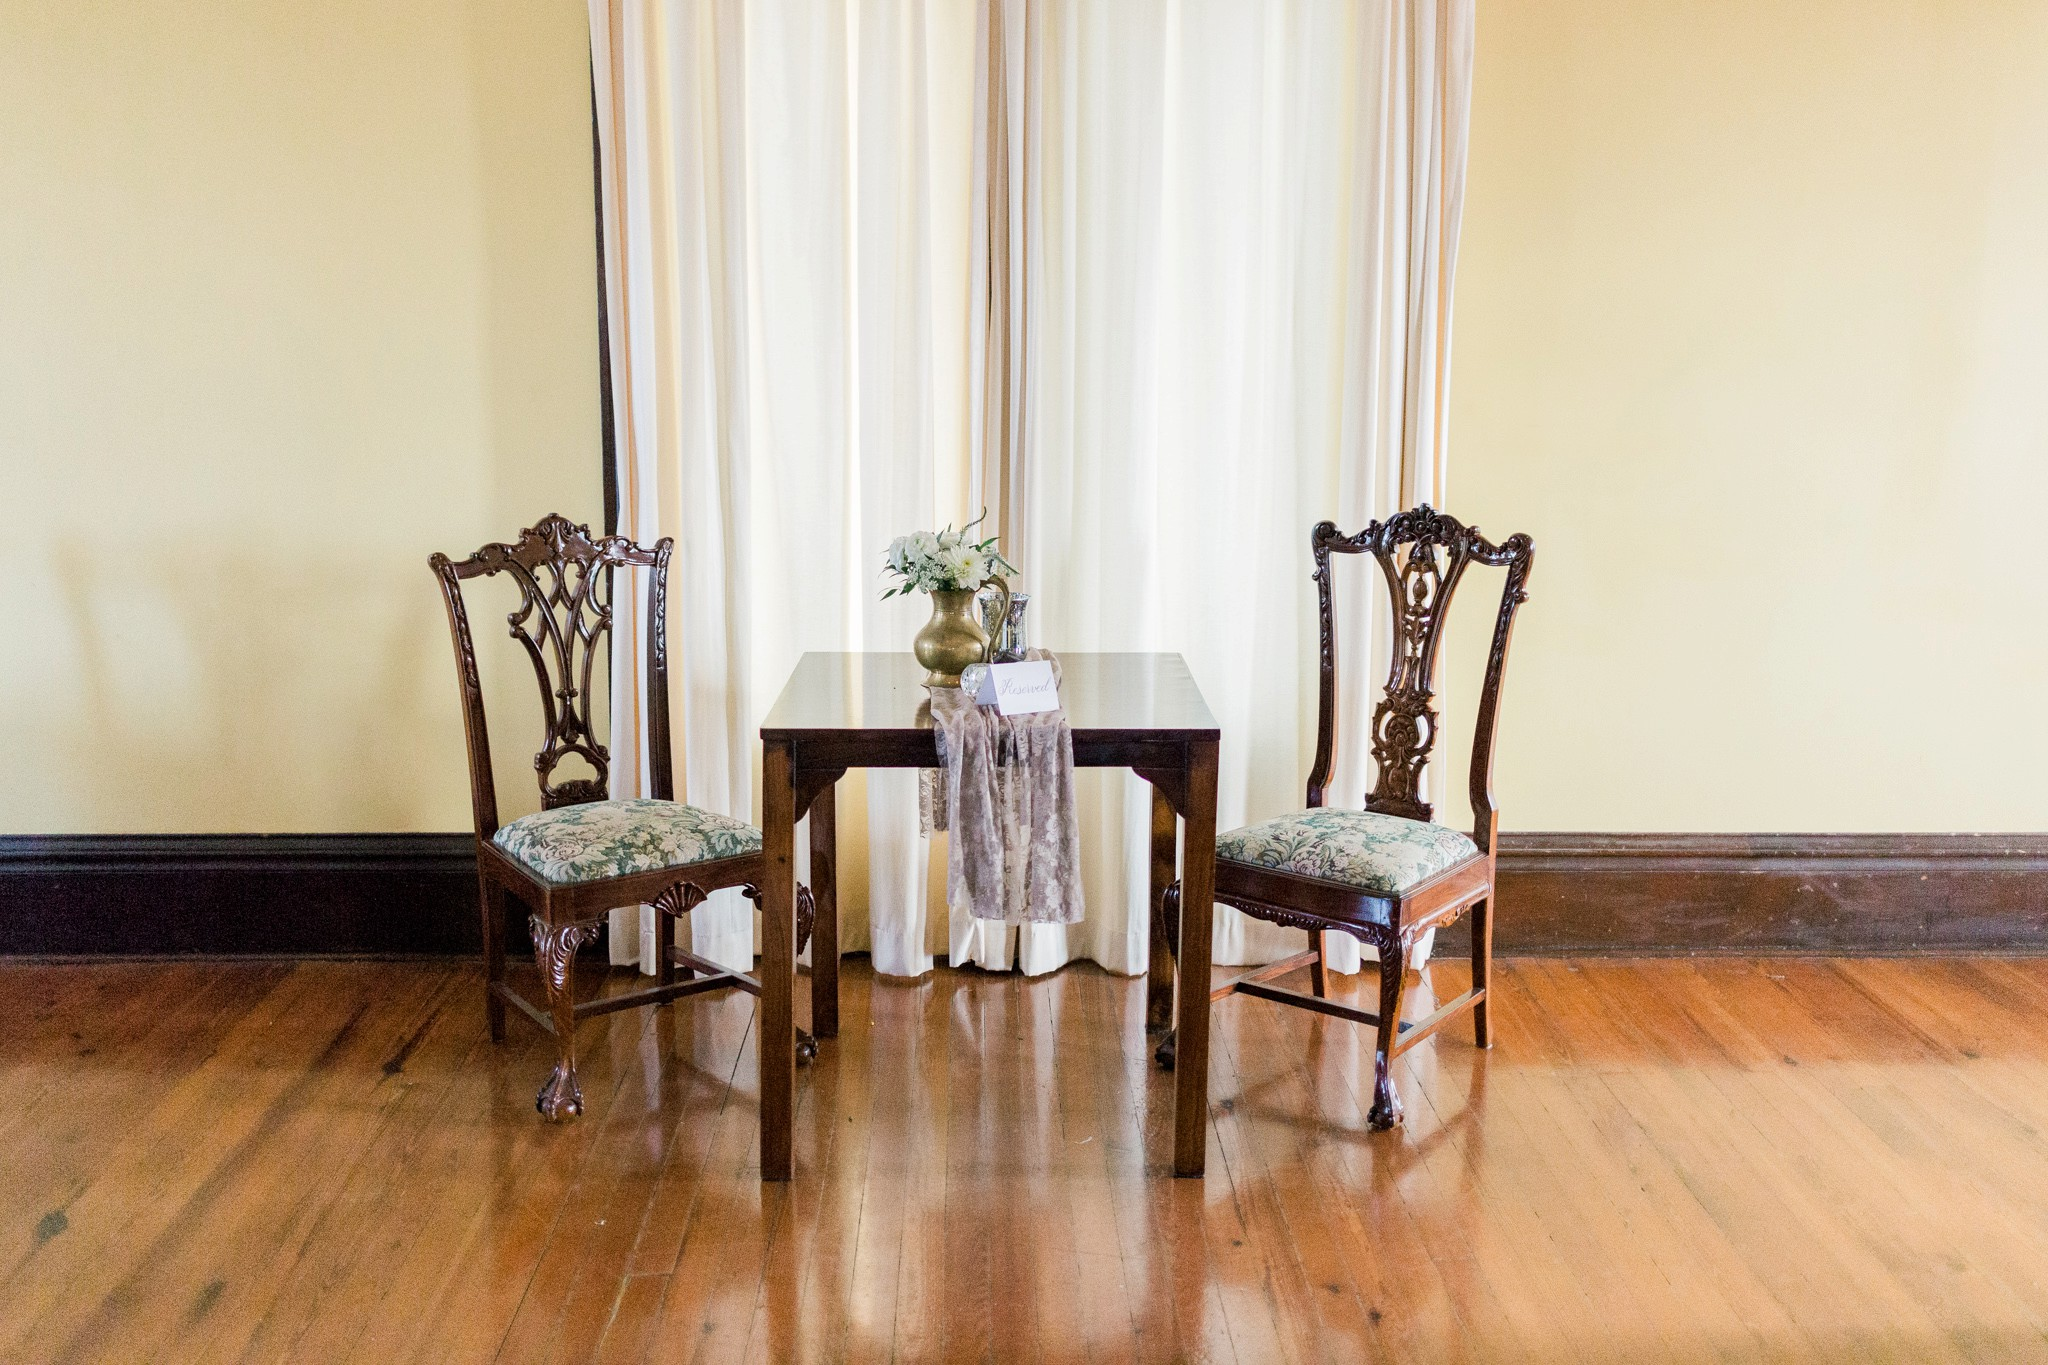 vintage-wedding-day-style-pinehills-floral-head-table-decor-redding-house